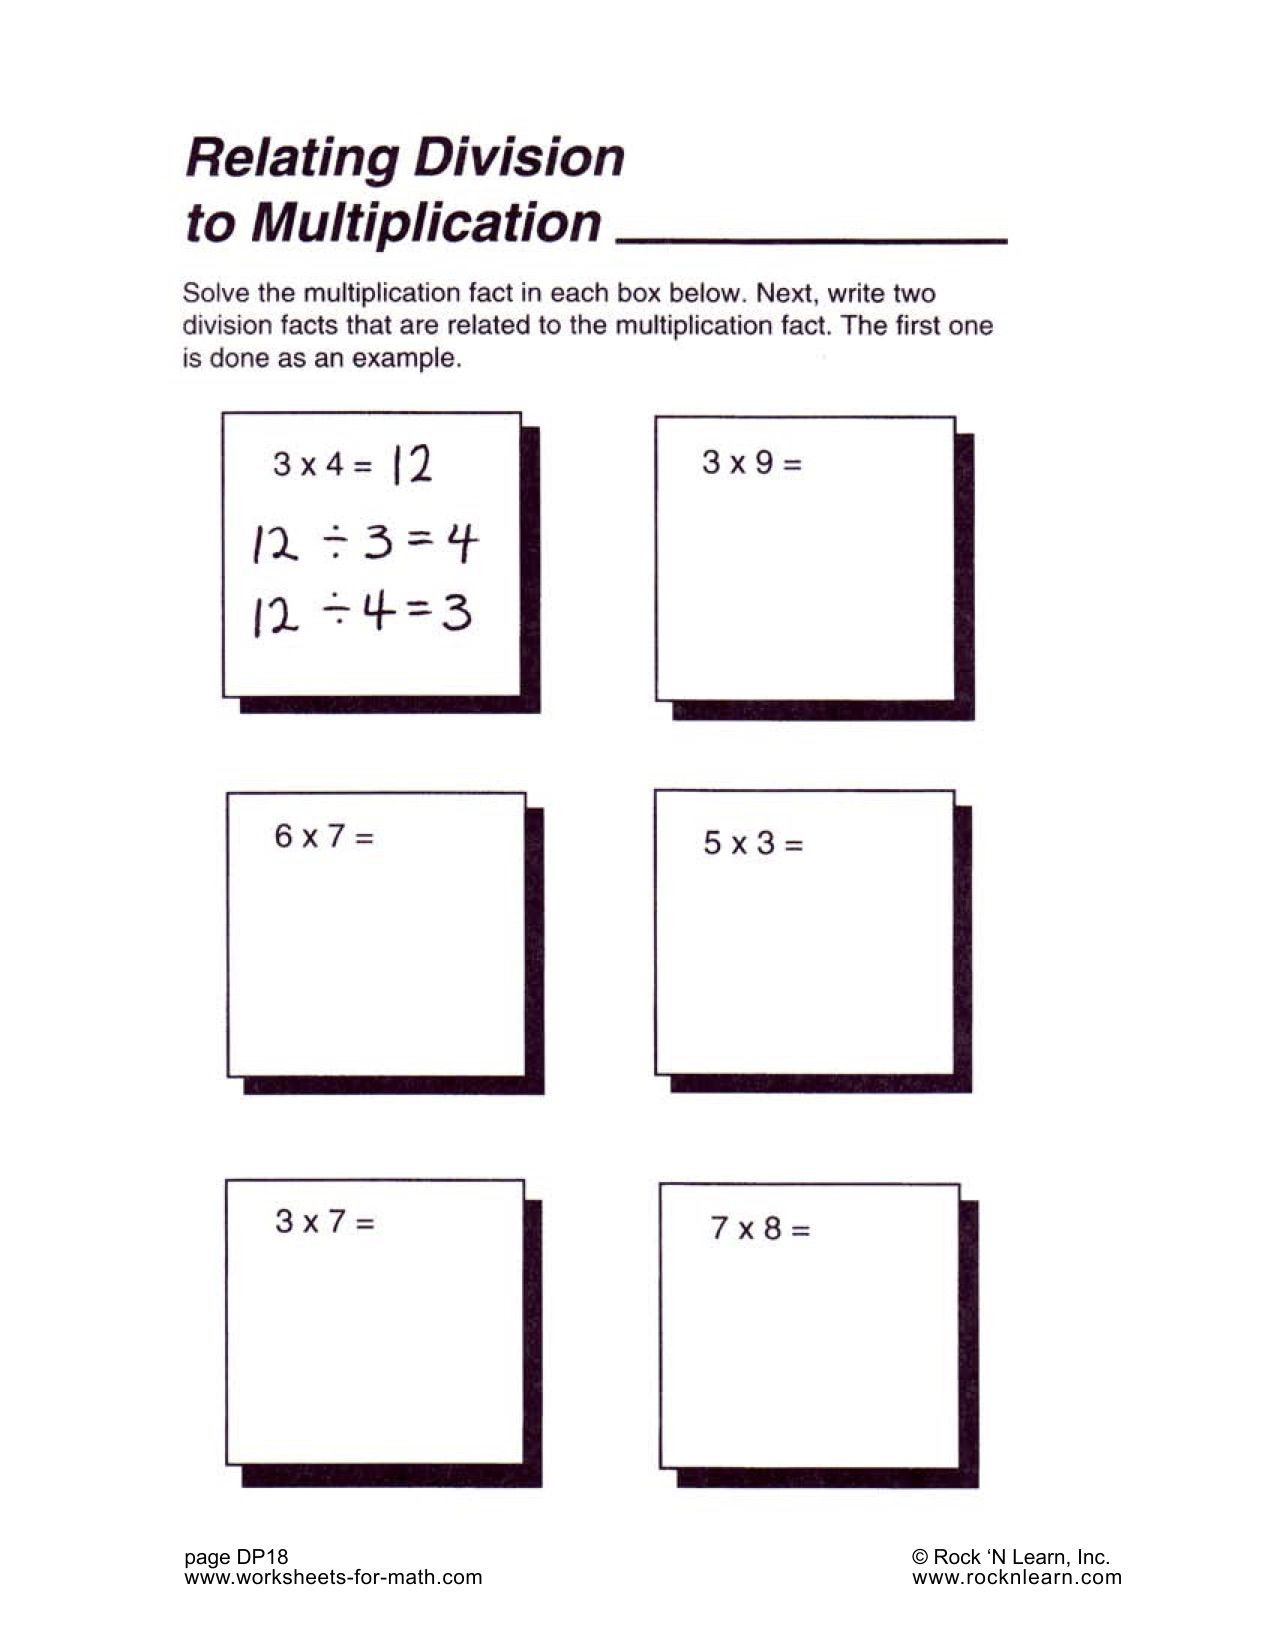 Related Multiplication Facts Worksheet solve the Multiplication Fact In Each Box Next Write 2